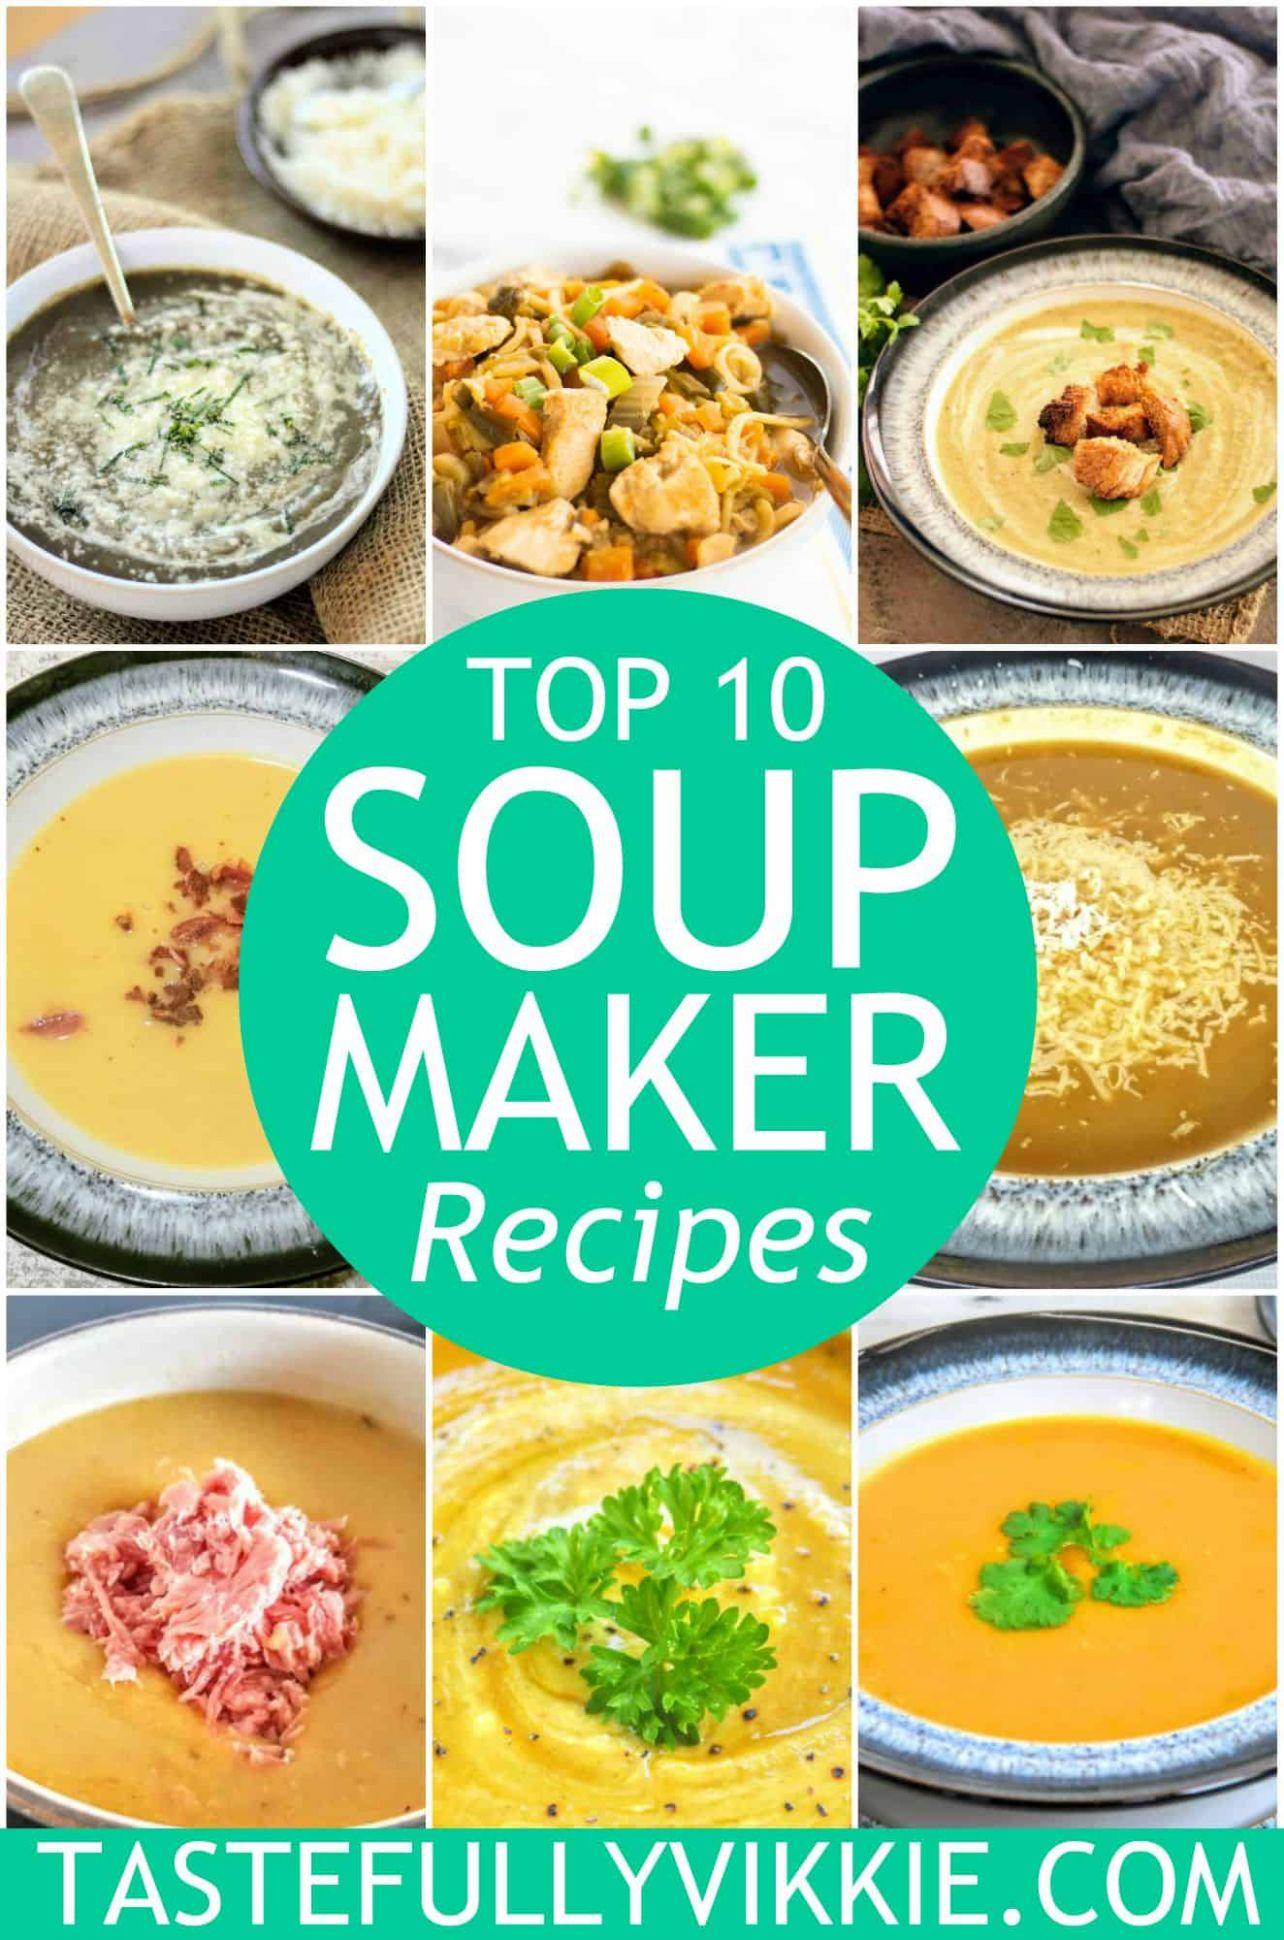 My Top 9 Most Popular Soup Maker Recipes - Tastefully Vikkie